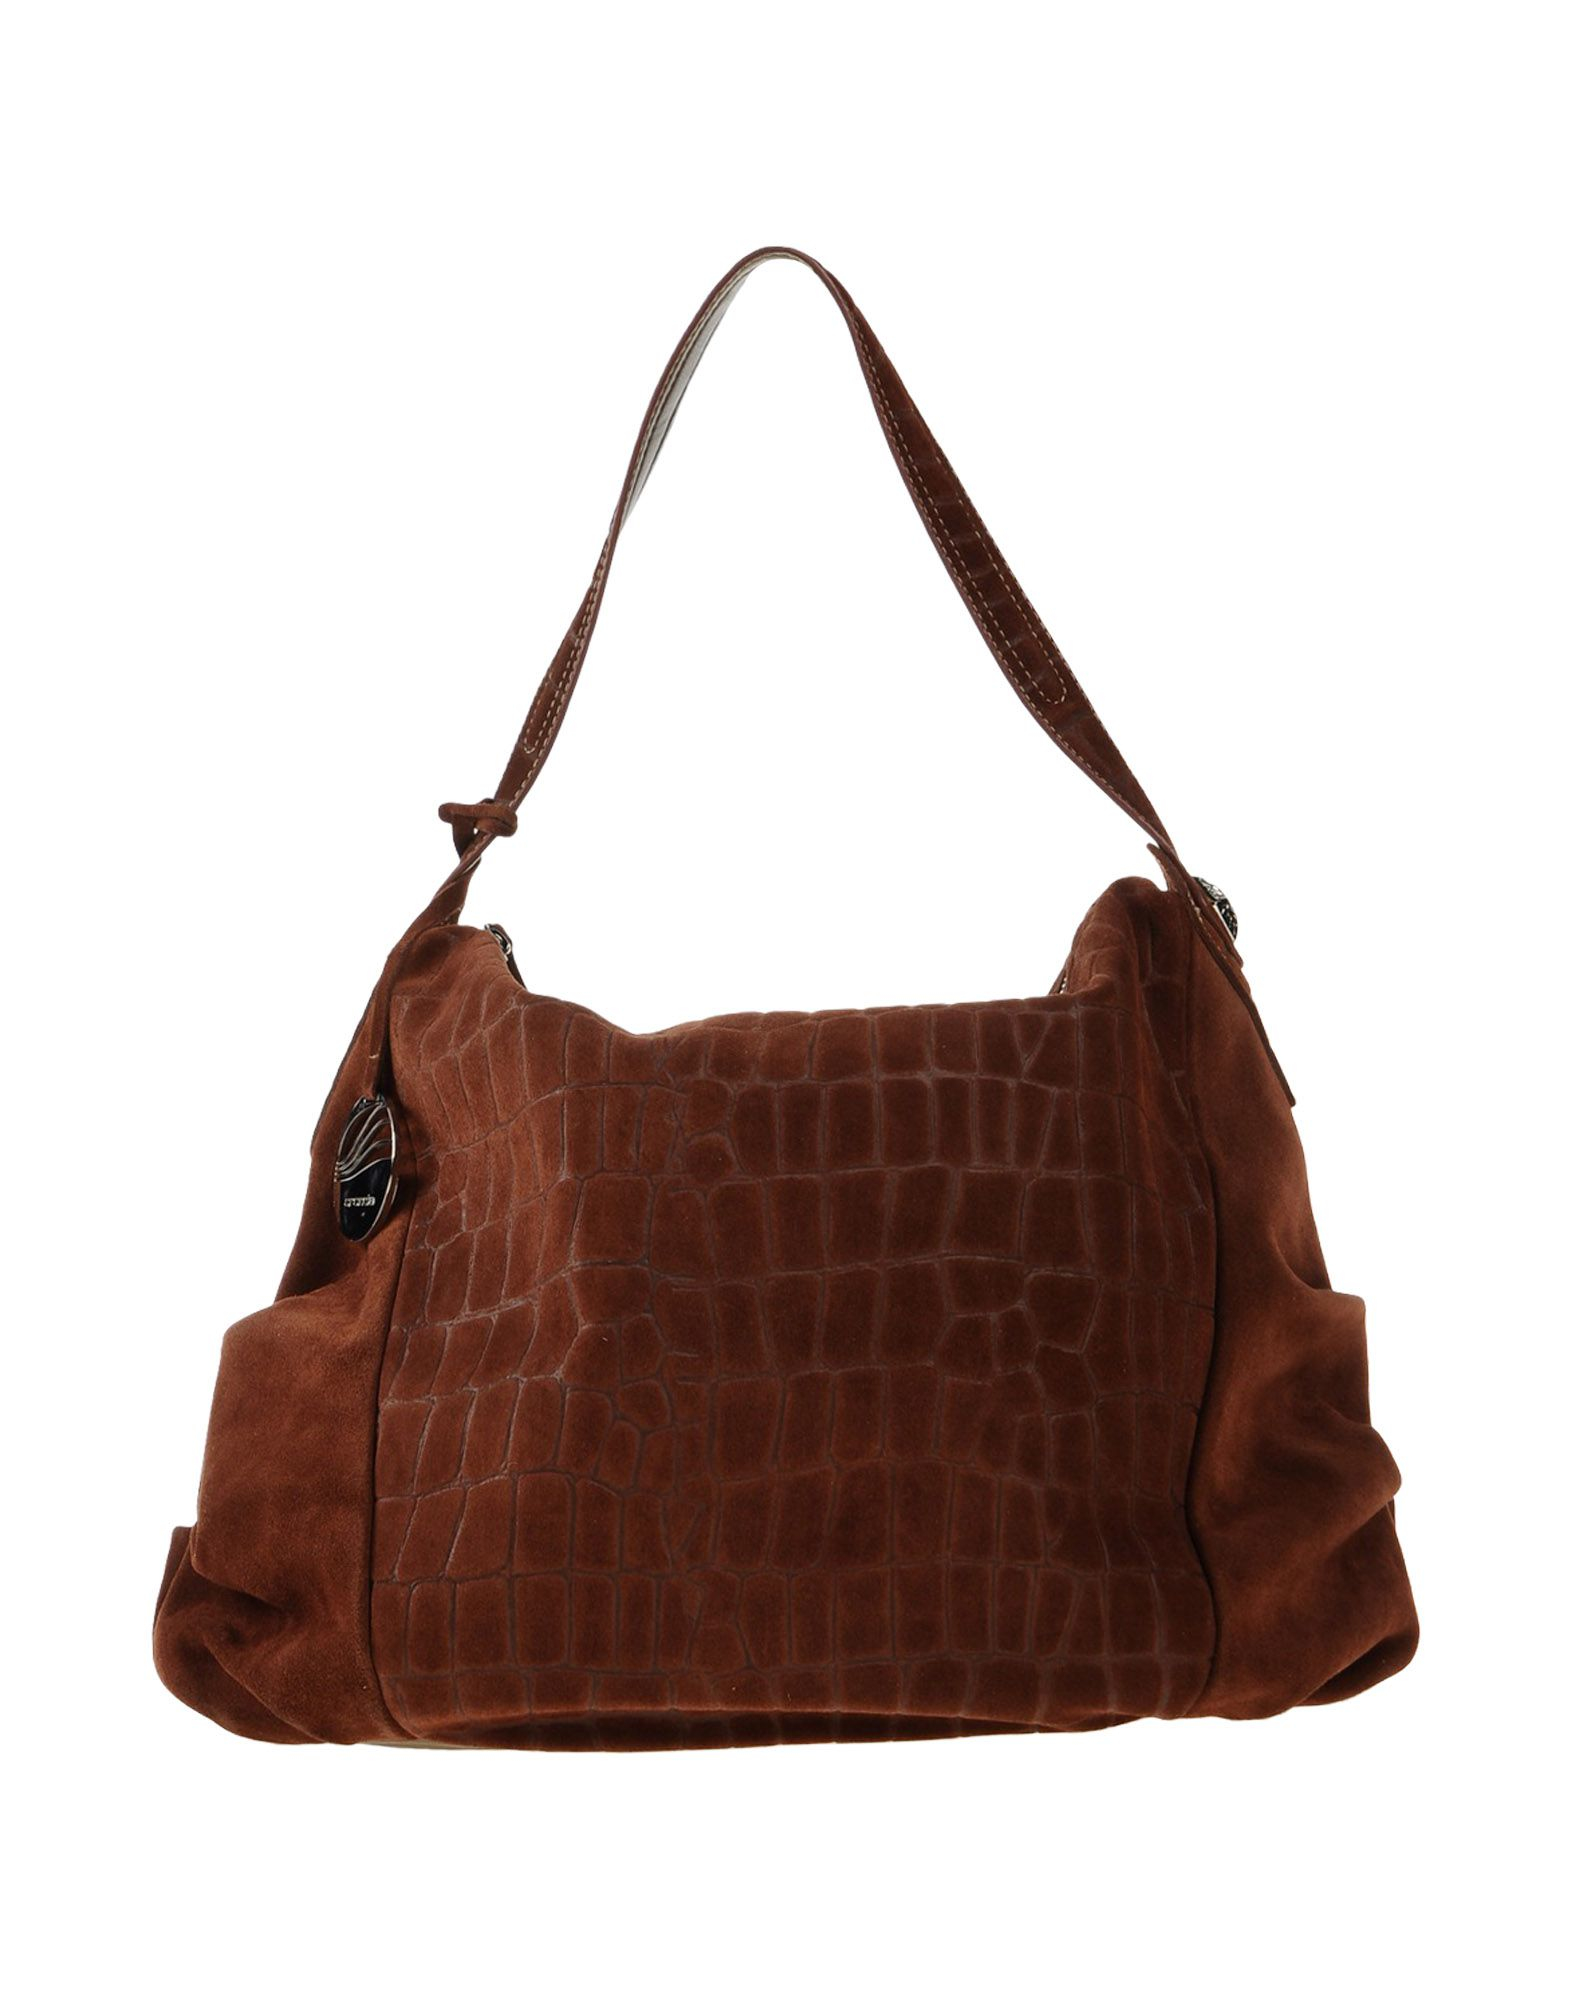 Cromia Handbag in Brown (Cocoa) - Save 37% Lyst